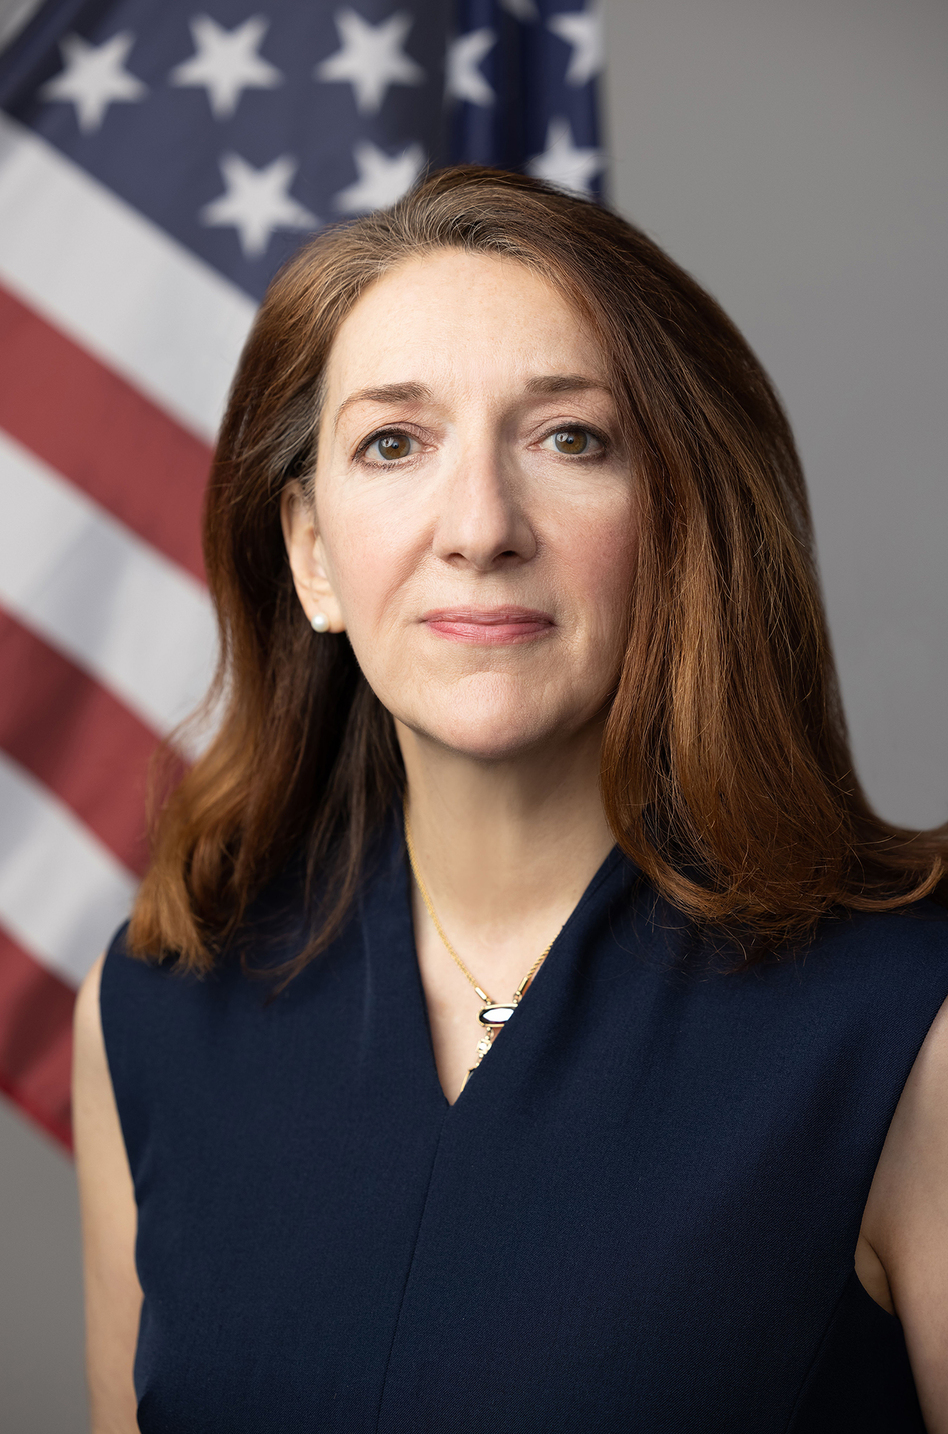 Regina LaBelle is the acting director of the White House Office of National Drug Control Policy. During a Thursday morning briefing, LaBelle said drug overdose deaths were up about 27% in the 12-month period ending in August 2020, compared with the previous year. (White House Office of National Drug Control Policy)